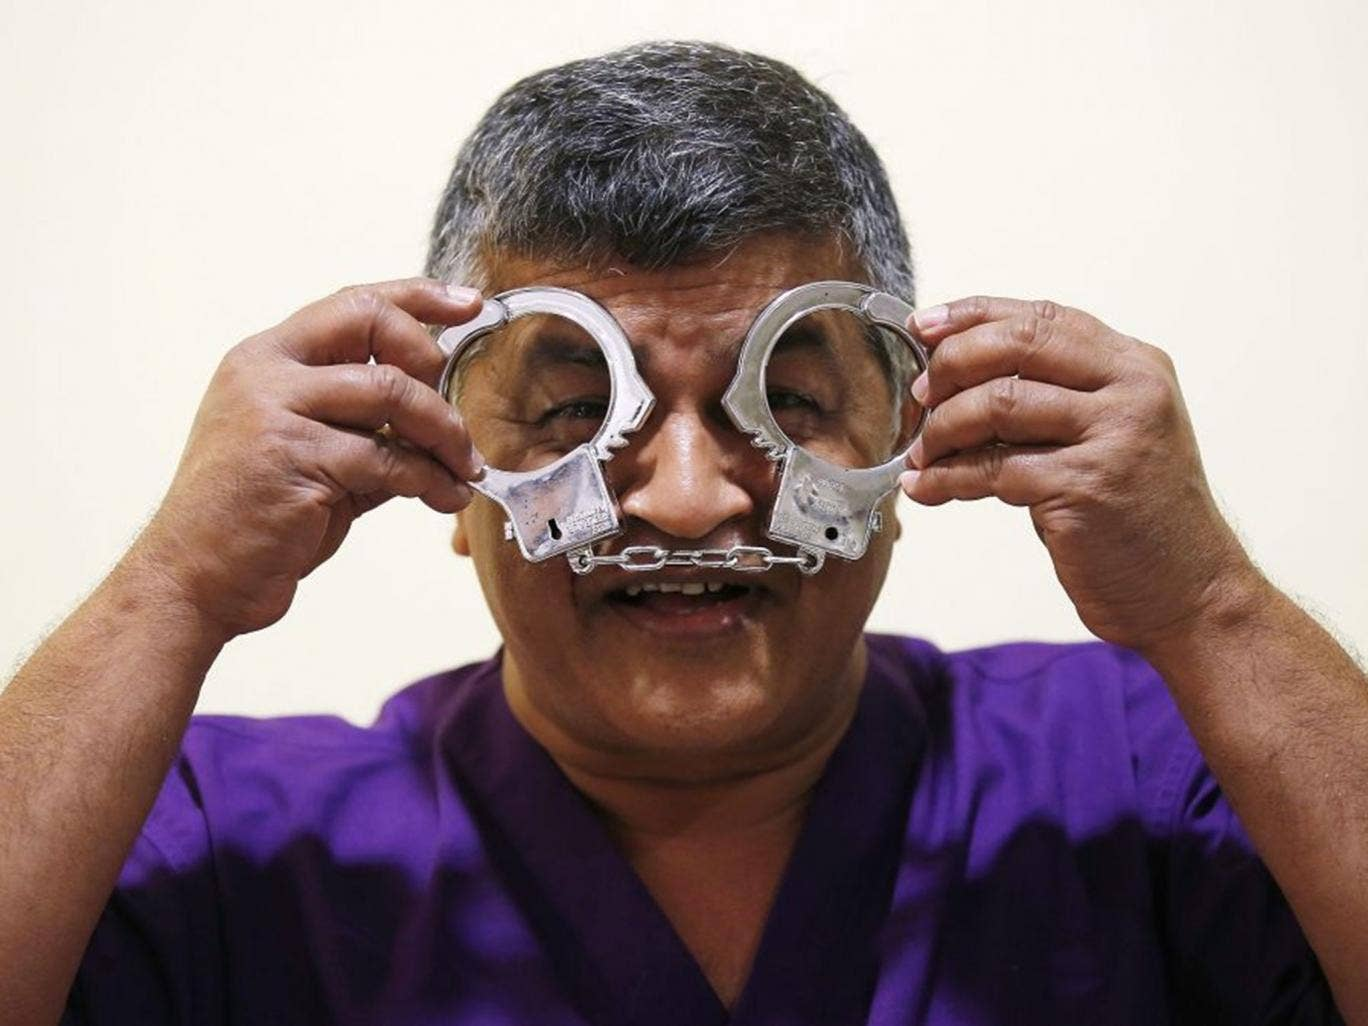 Malaysian political cartoonist Zulkiflee Anwar Haque, or 'Zunar', reacts with mock handcuffs during his case at Duta Court, in Kuala Lumpur, 03 April 2015. Zunar is facing nine charges under Malaysia's Sedition Act which are related to a series of tweets